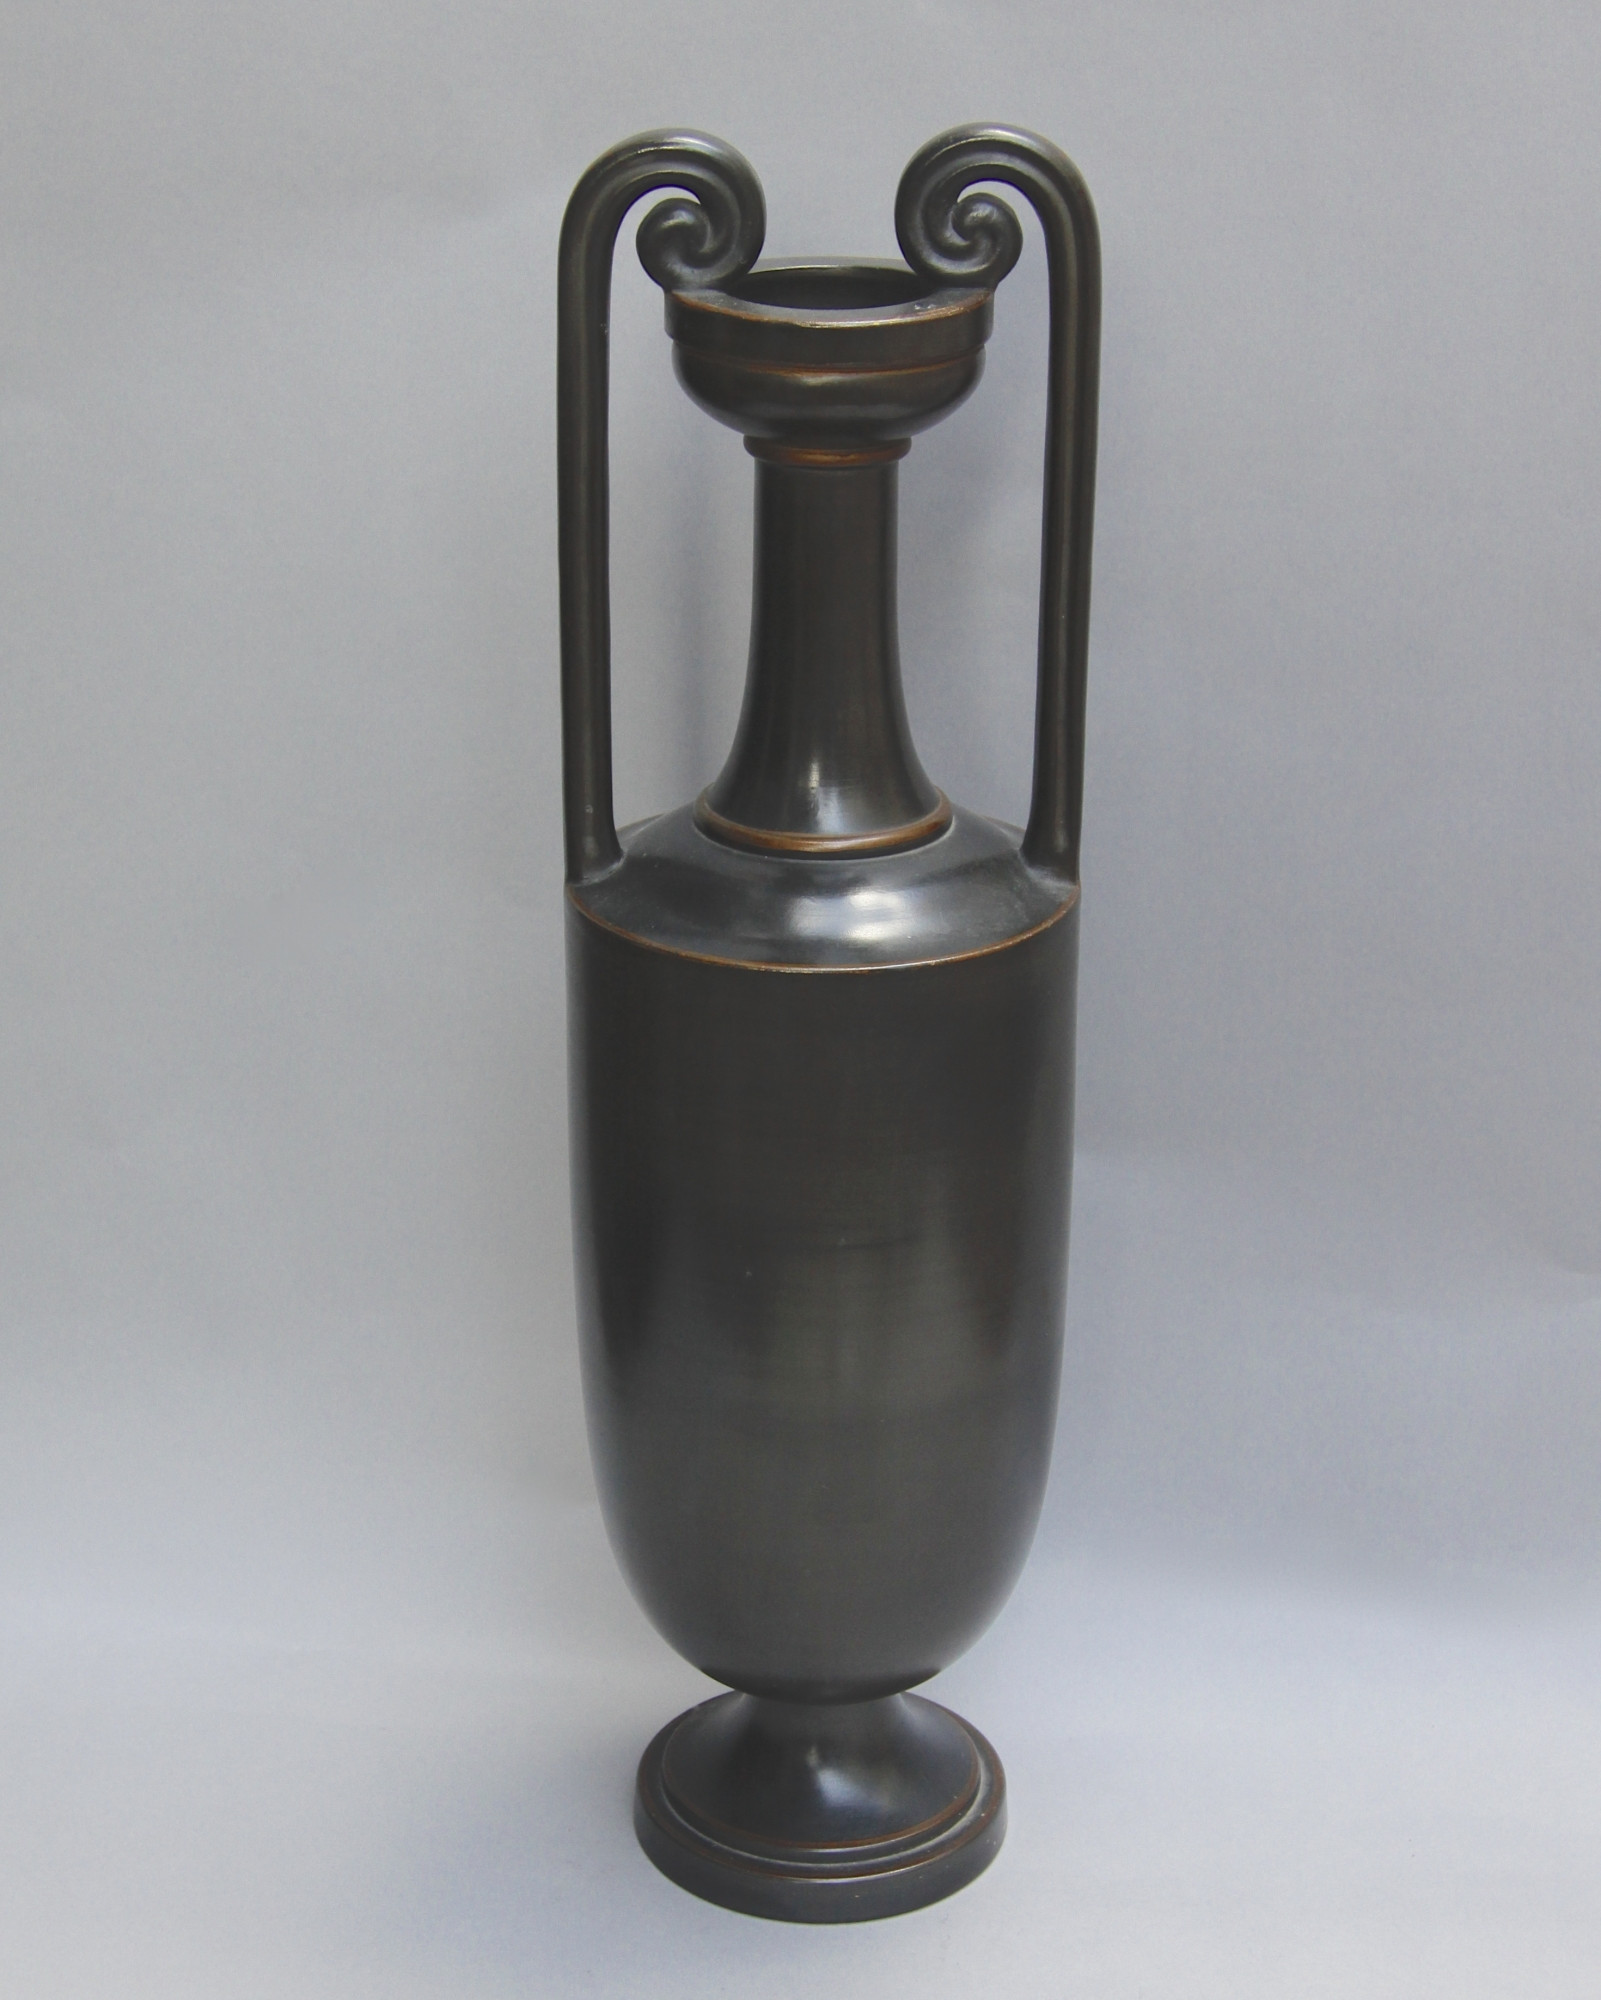 grecian style vases of greek style vase by the ipsen workshop artlistings inside greek style vase by the ipsen workshop